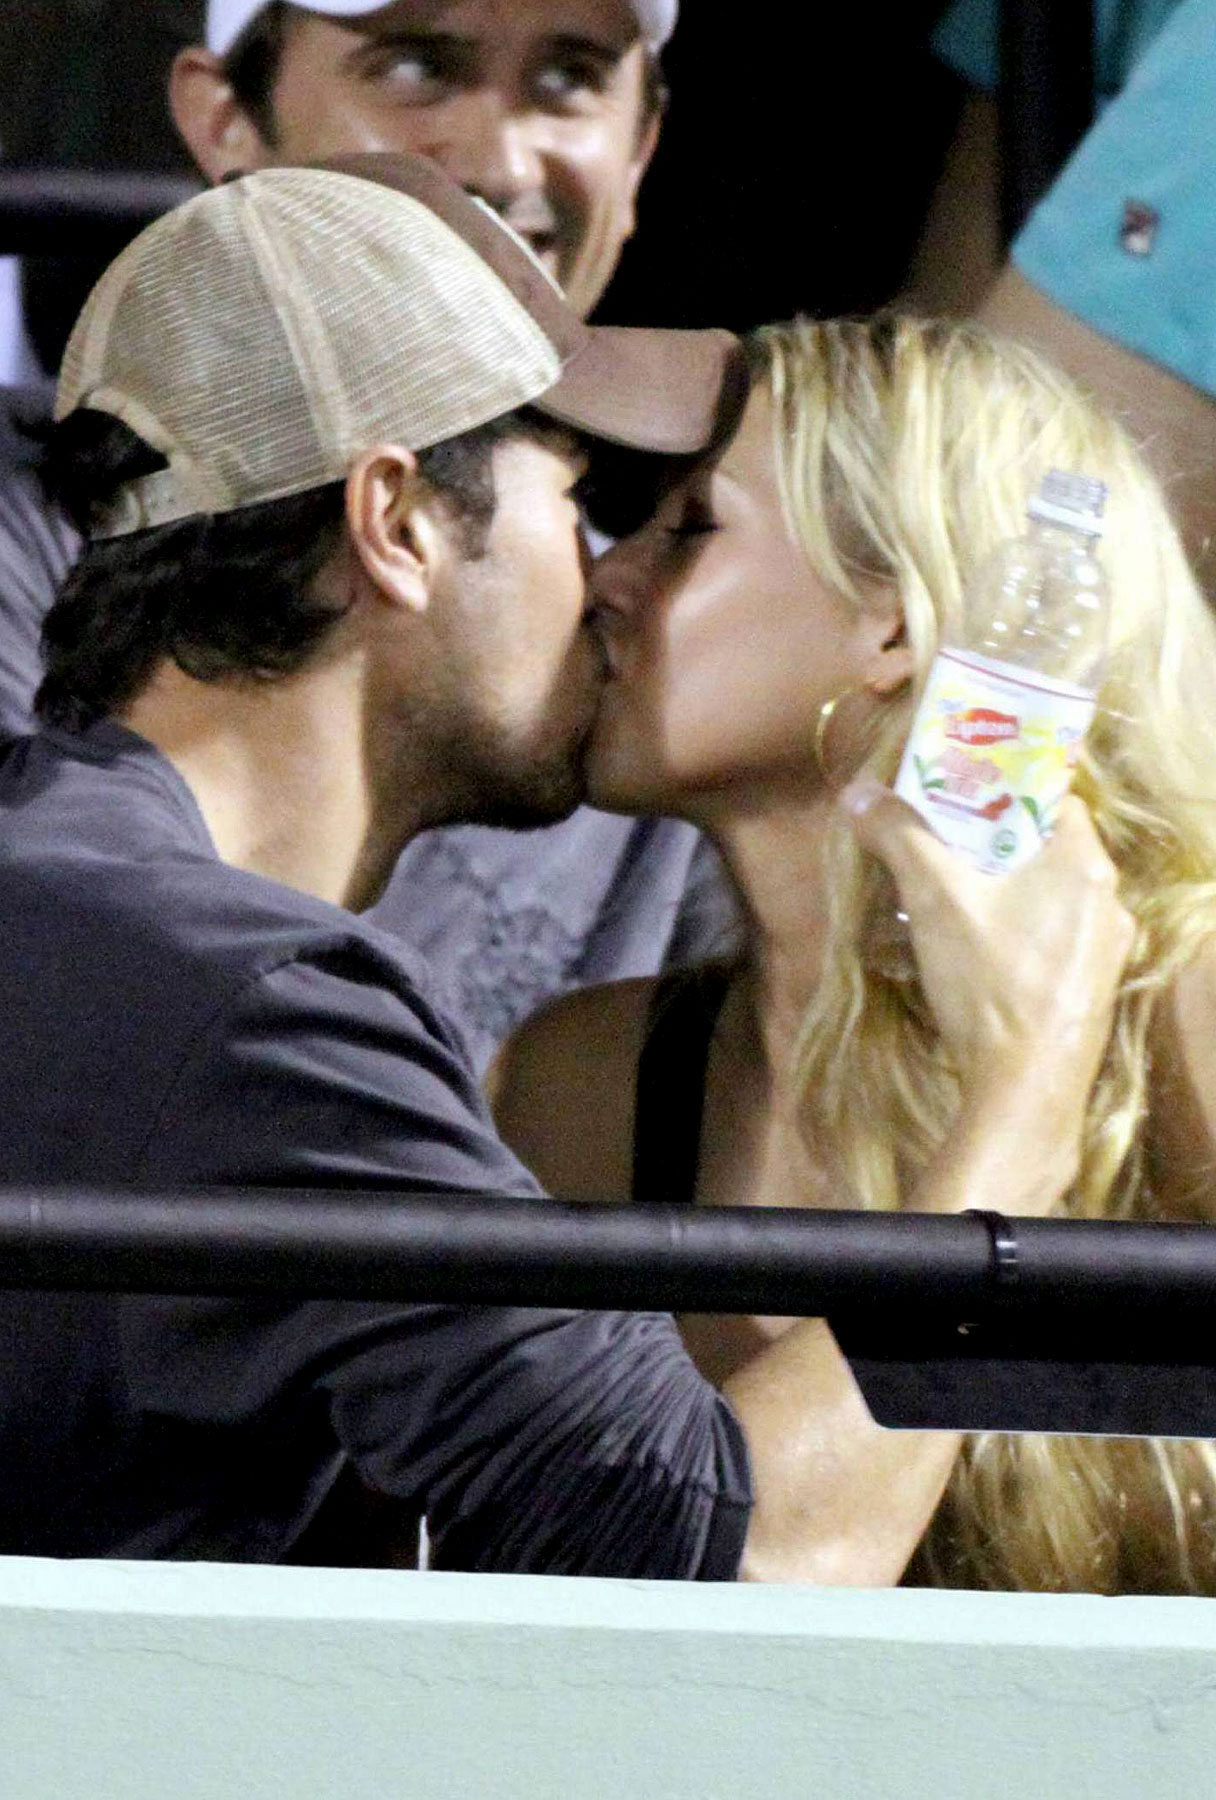 Anna Kournikova and Enrique Iglesias making out at the Sony Ericsson Open